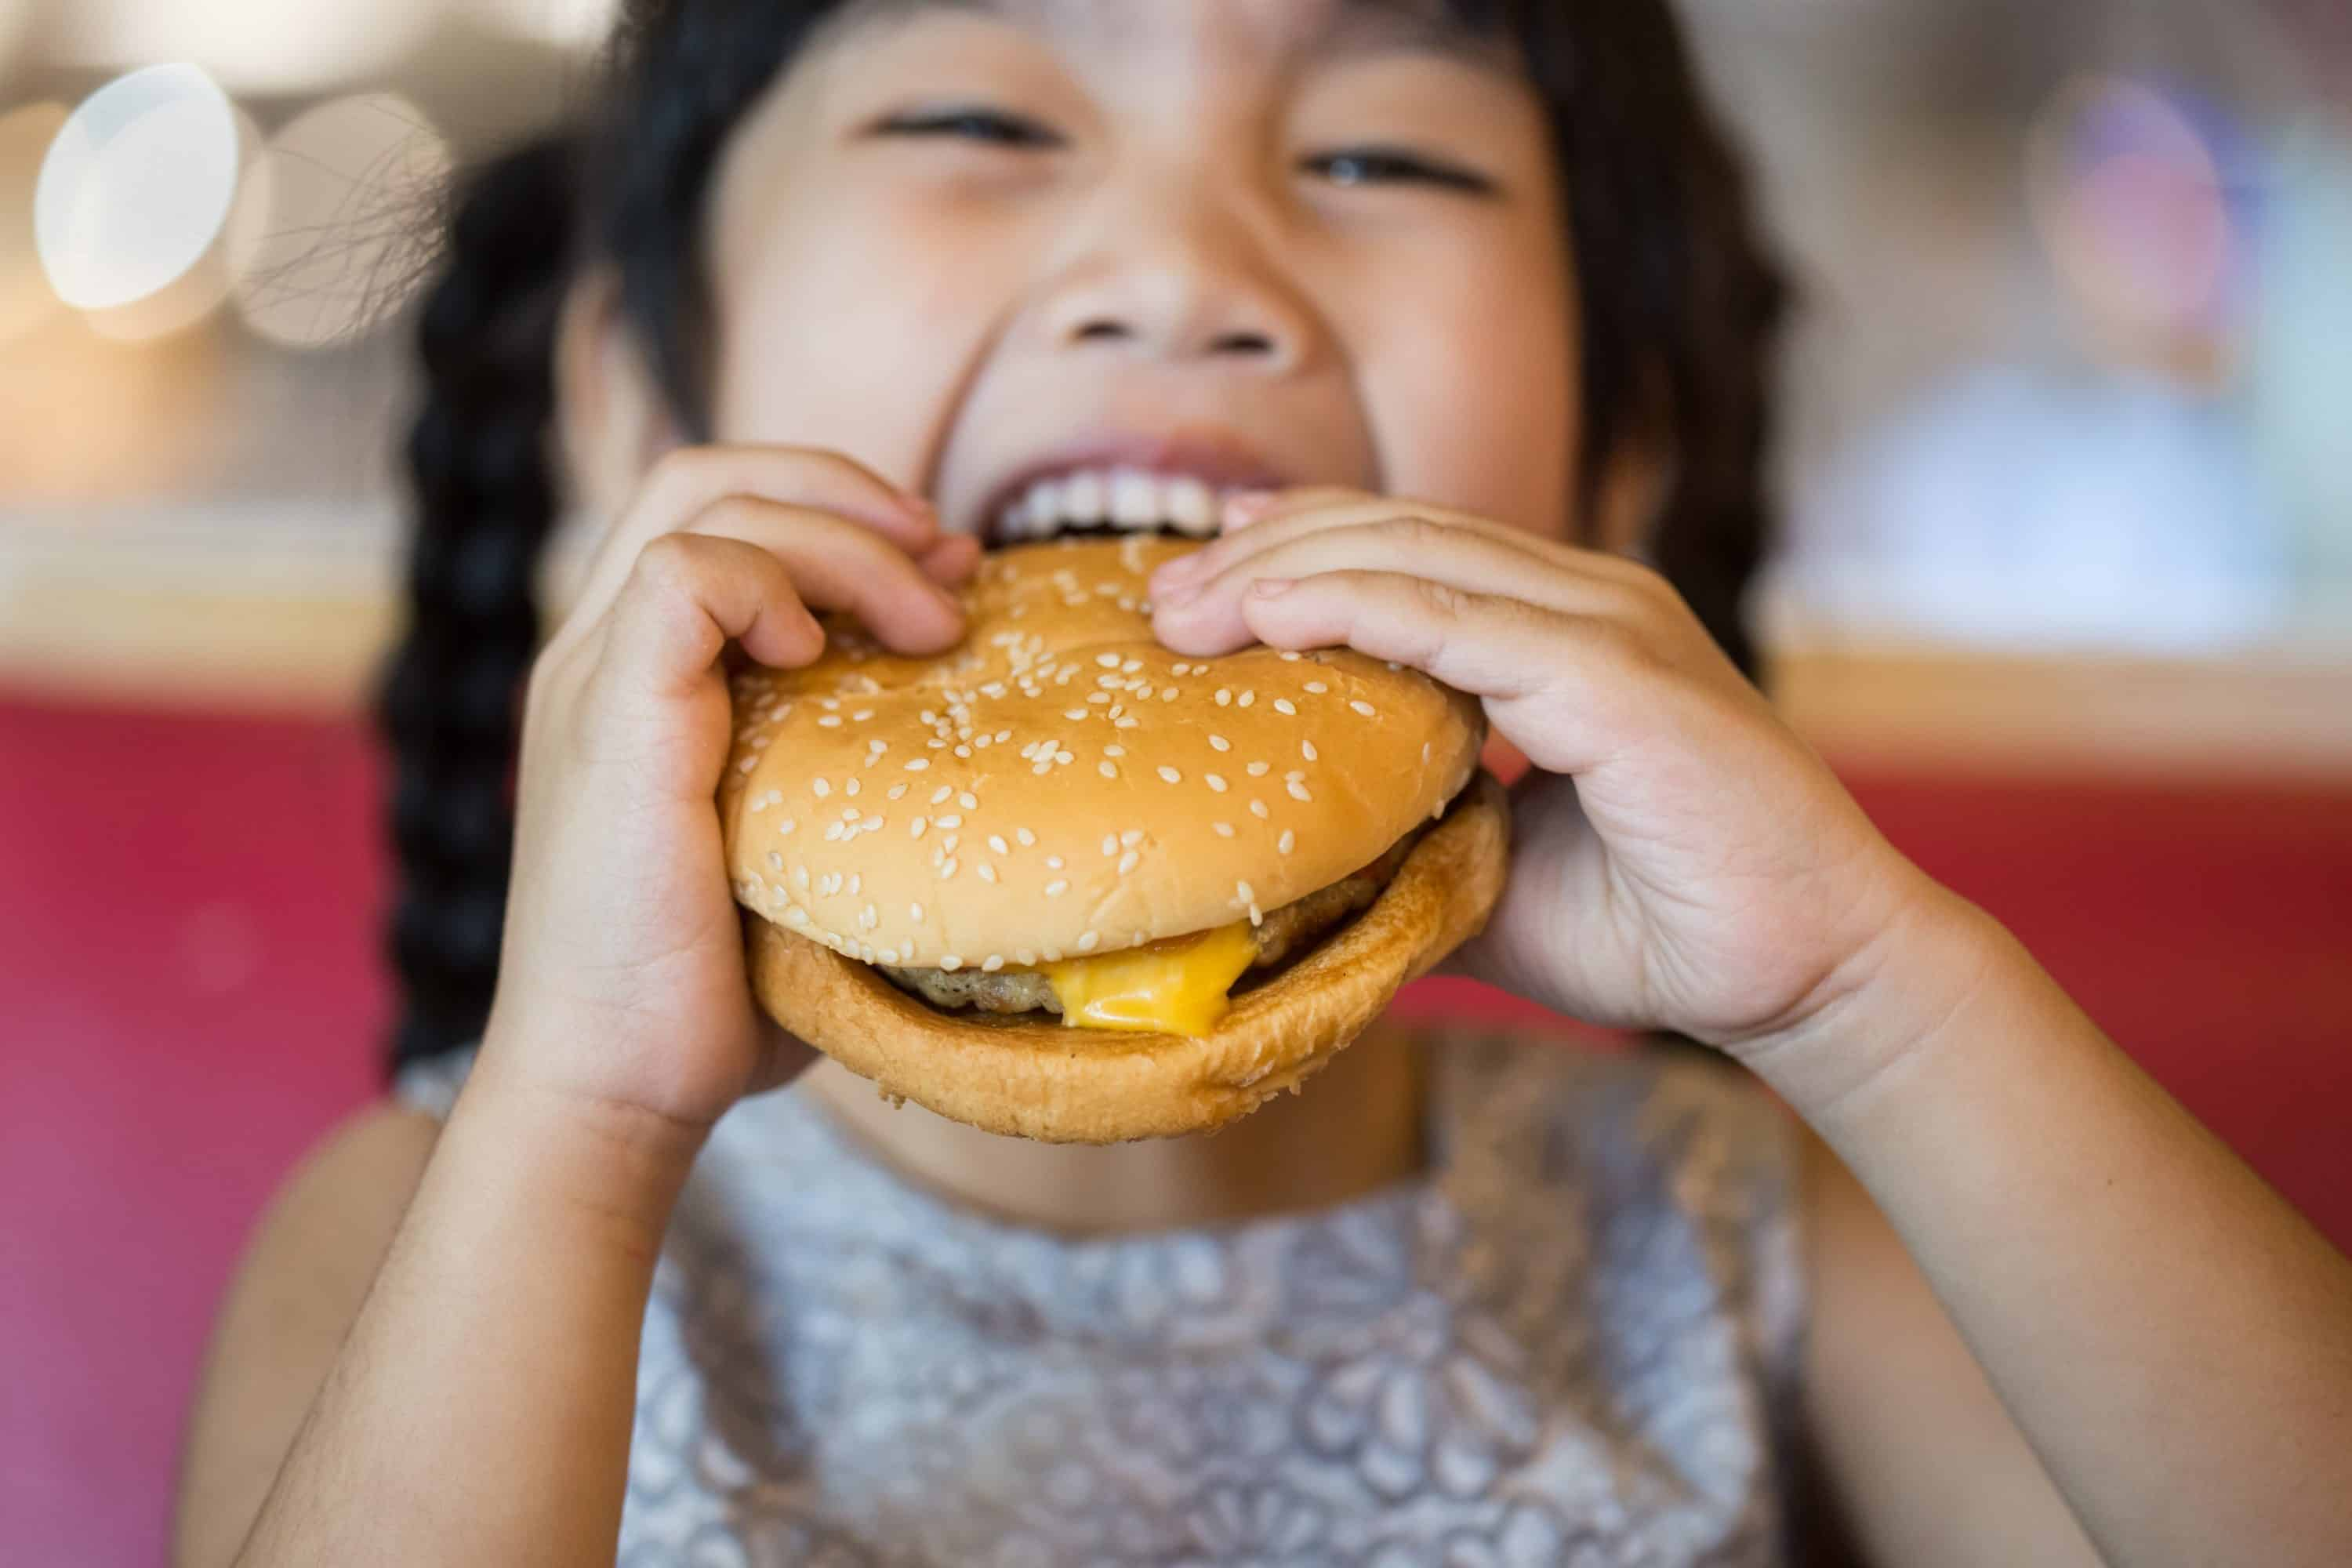 kiddie-academy-national-hamburger-day